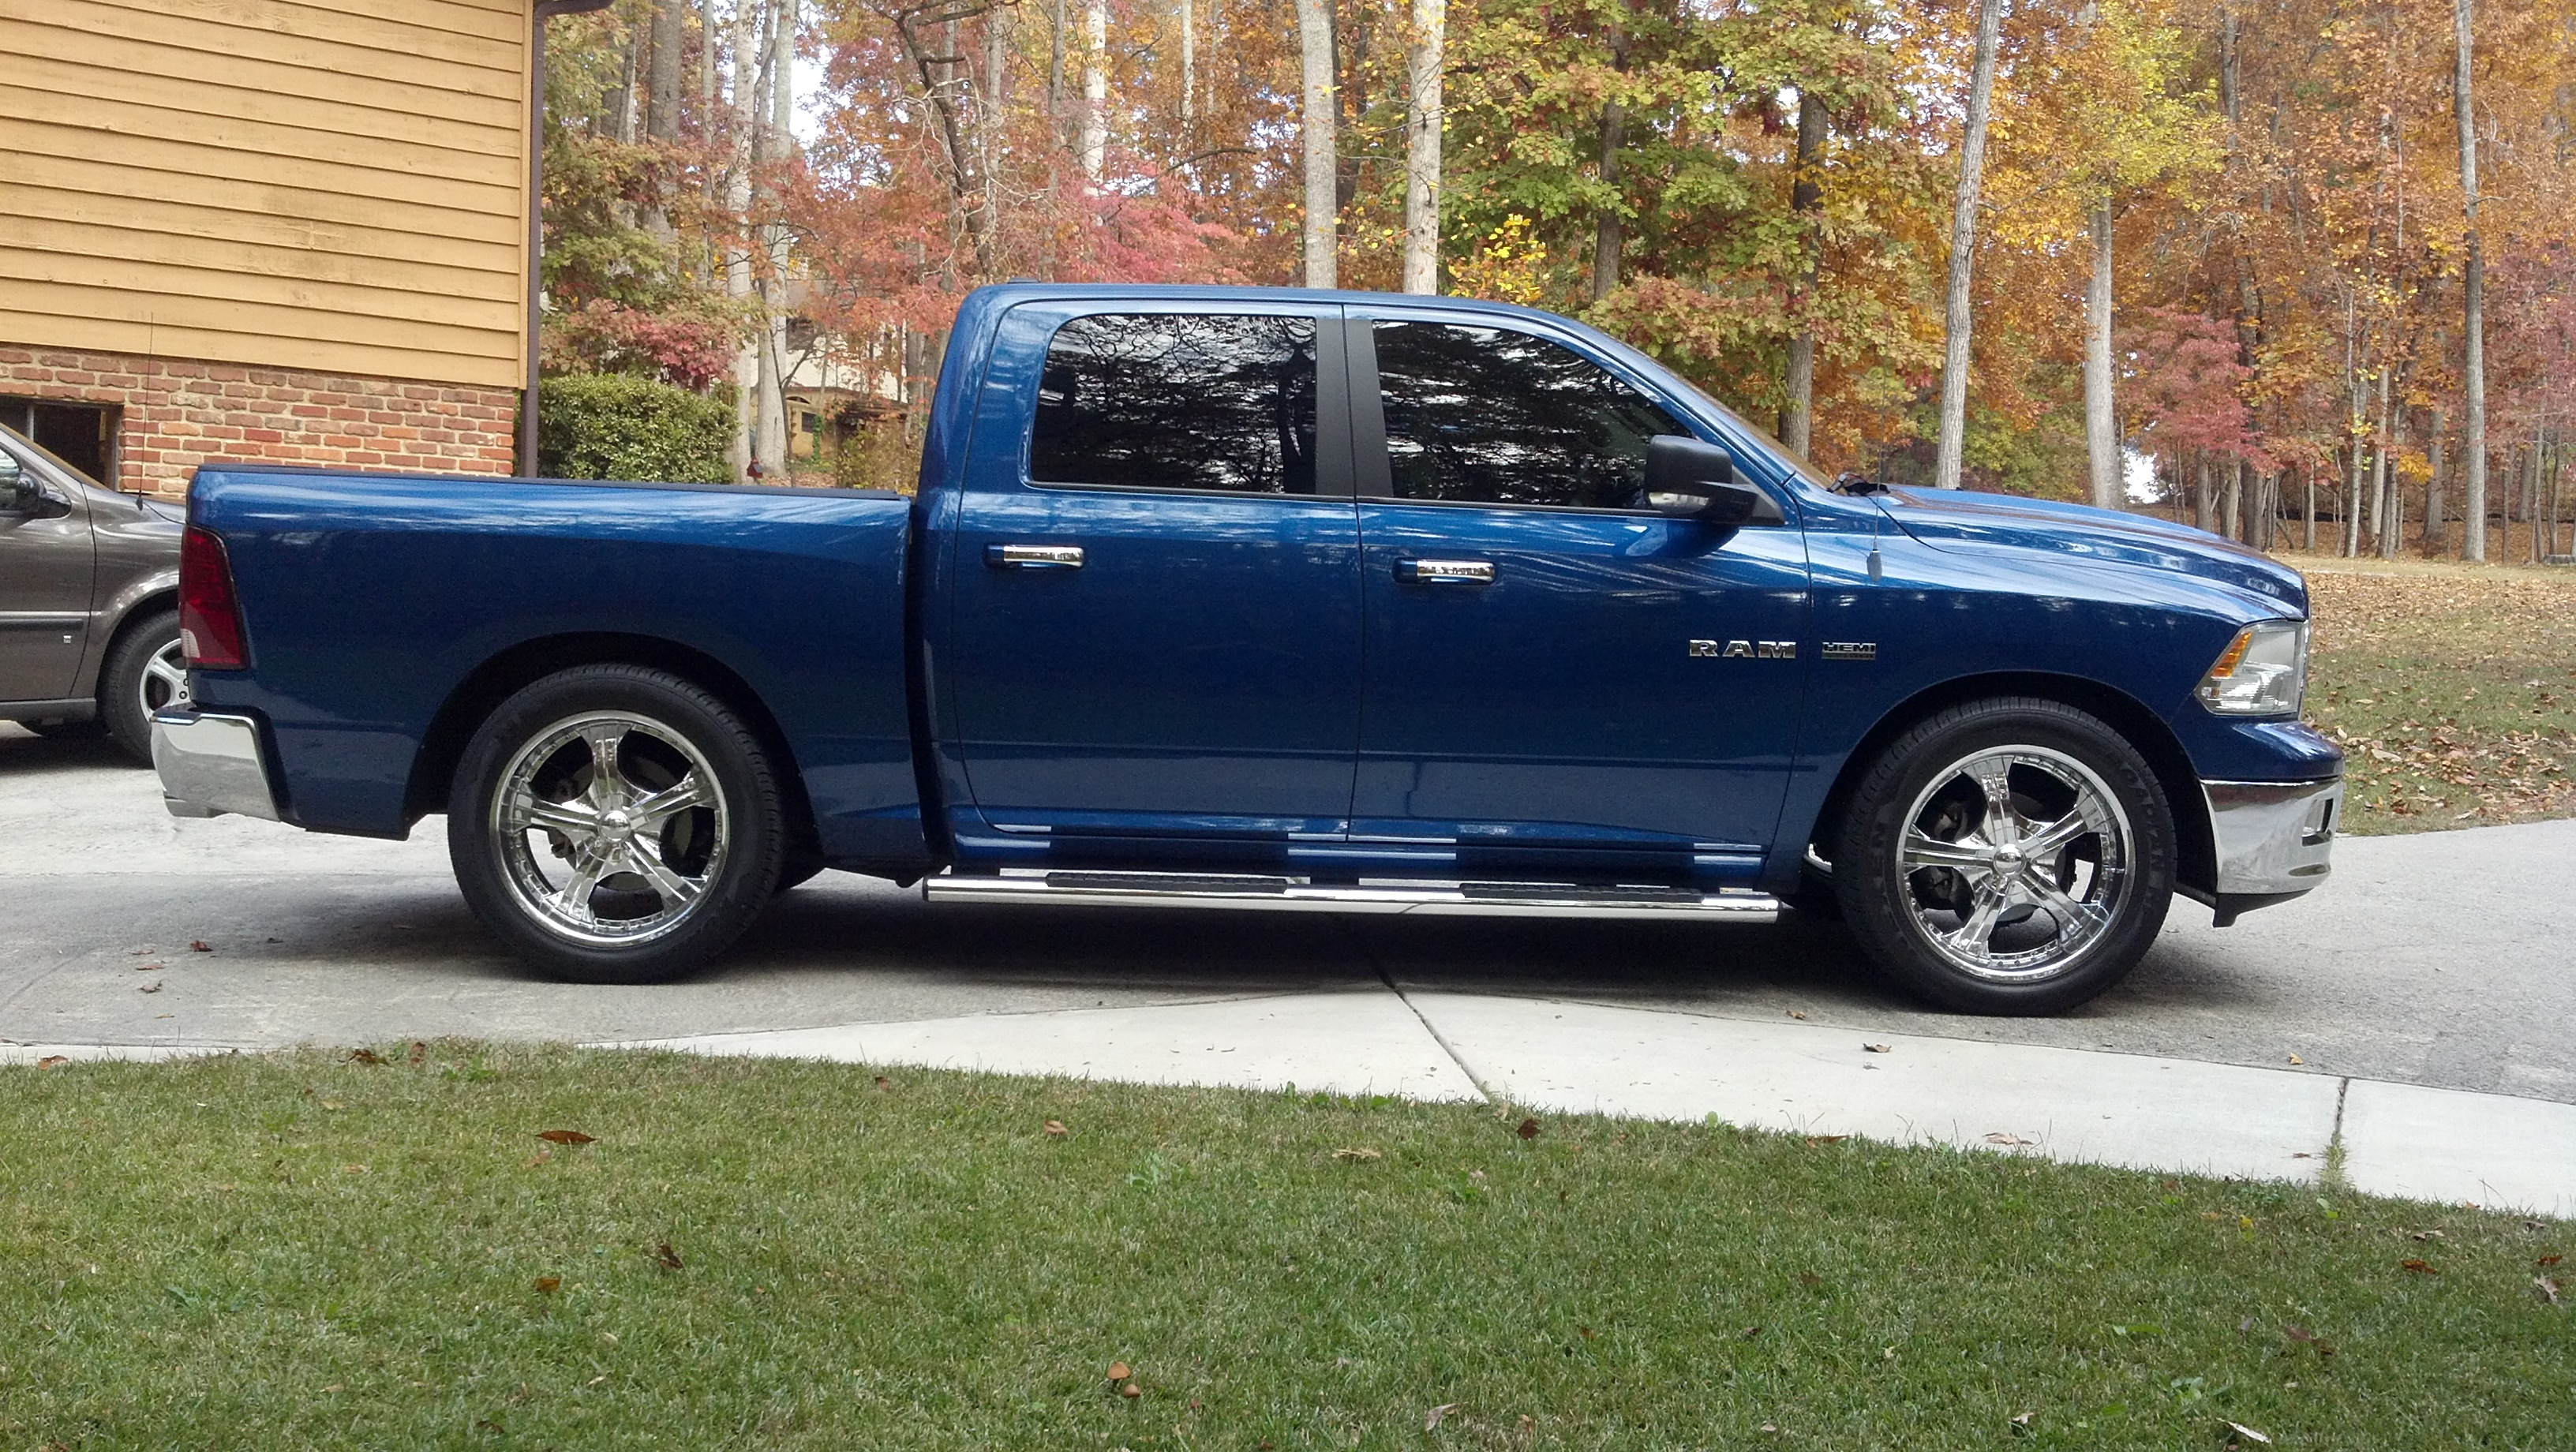 deathtorice 2009 dodge ram 1500 crew cabslt specs photos modification info at cardomain. Black Bedroom Furniture Sets. Home Design Ideas